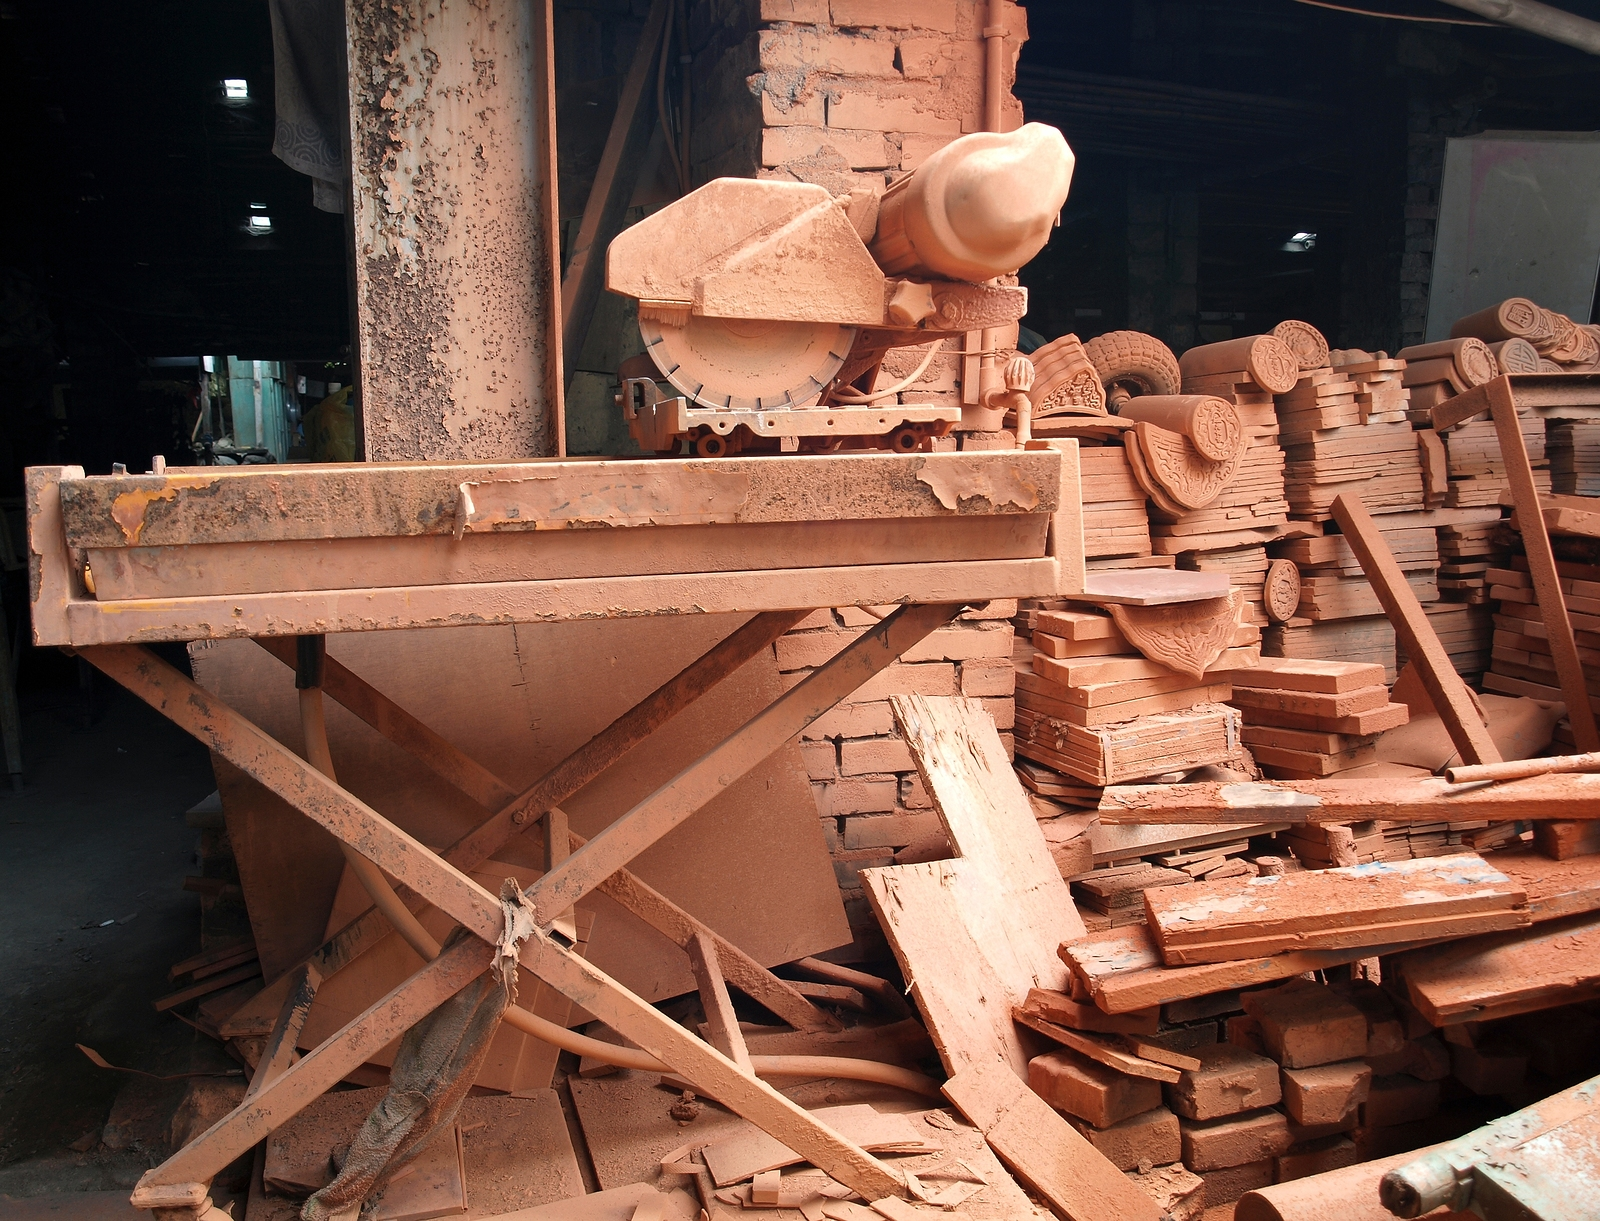 bigstock-Old-Brick-Making-Factory-32399042